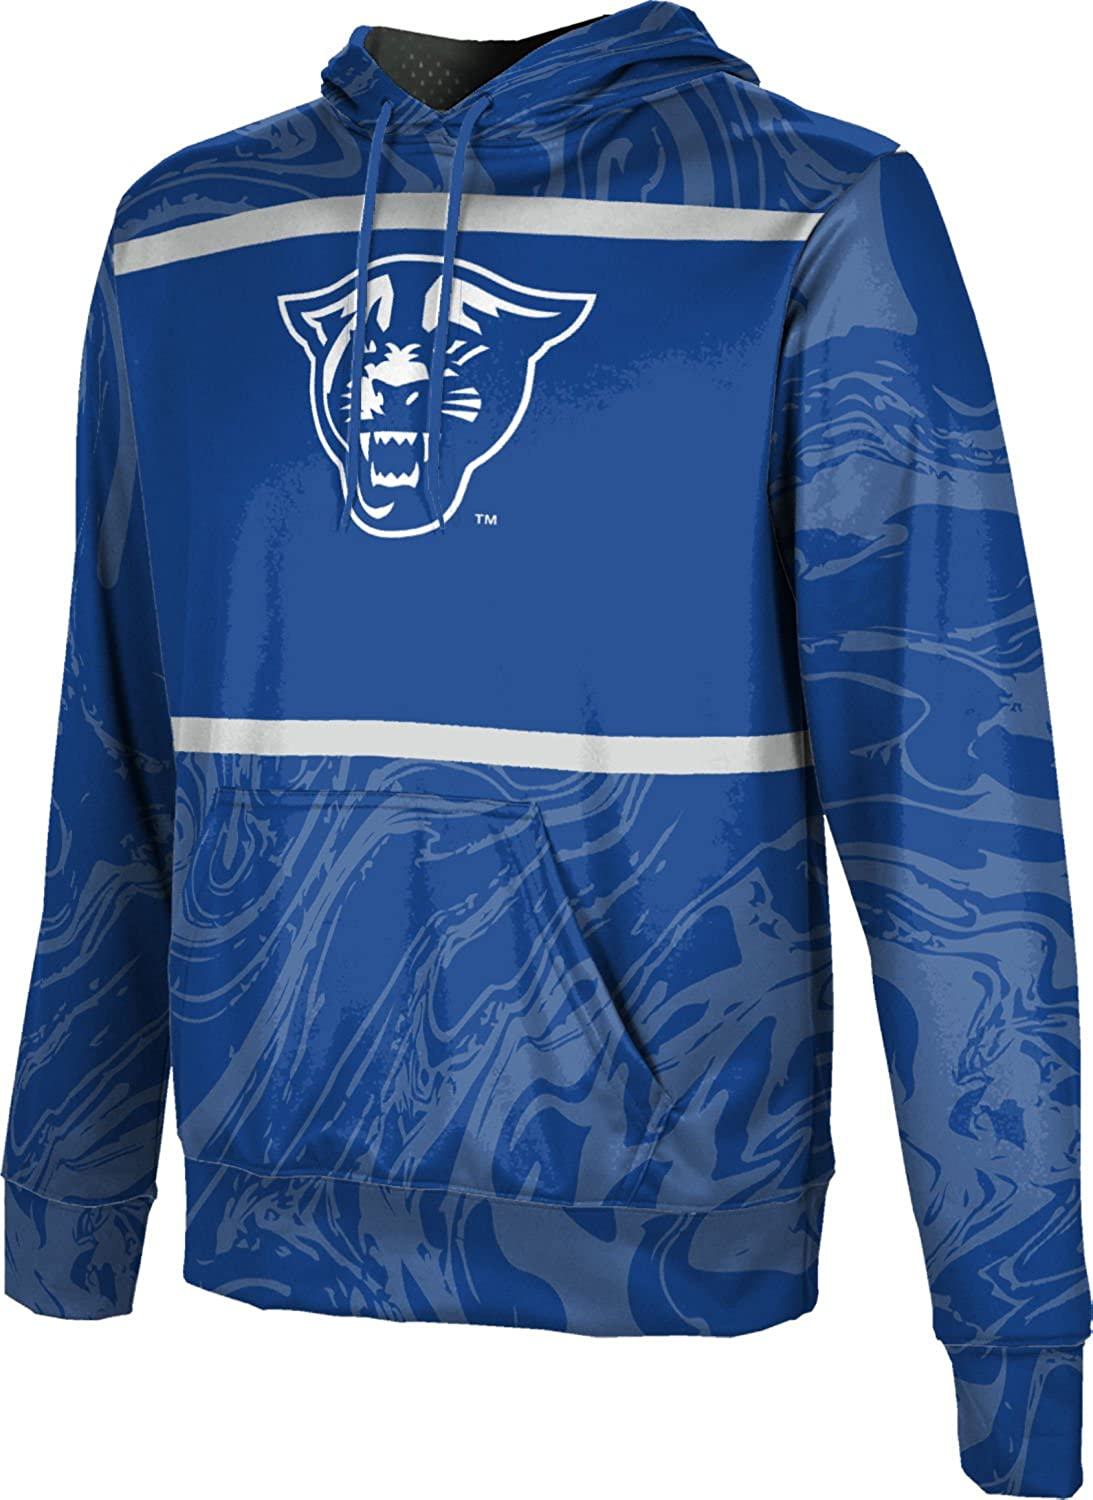 Georgia State University Boys' Pullover Sw School Hoodie Spirit Super Special SEAL limited product SALE held